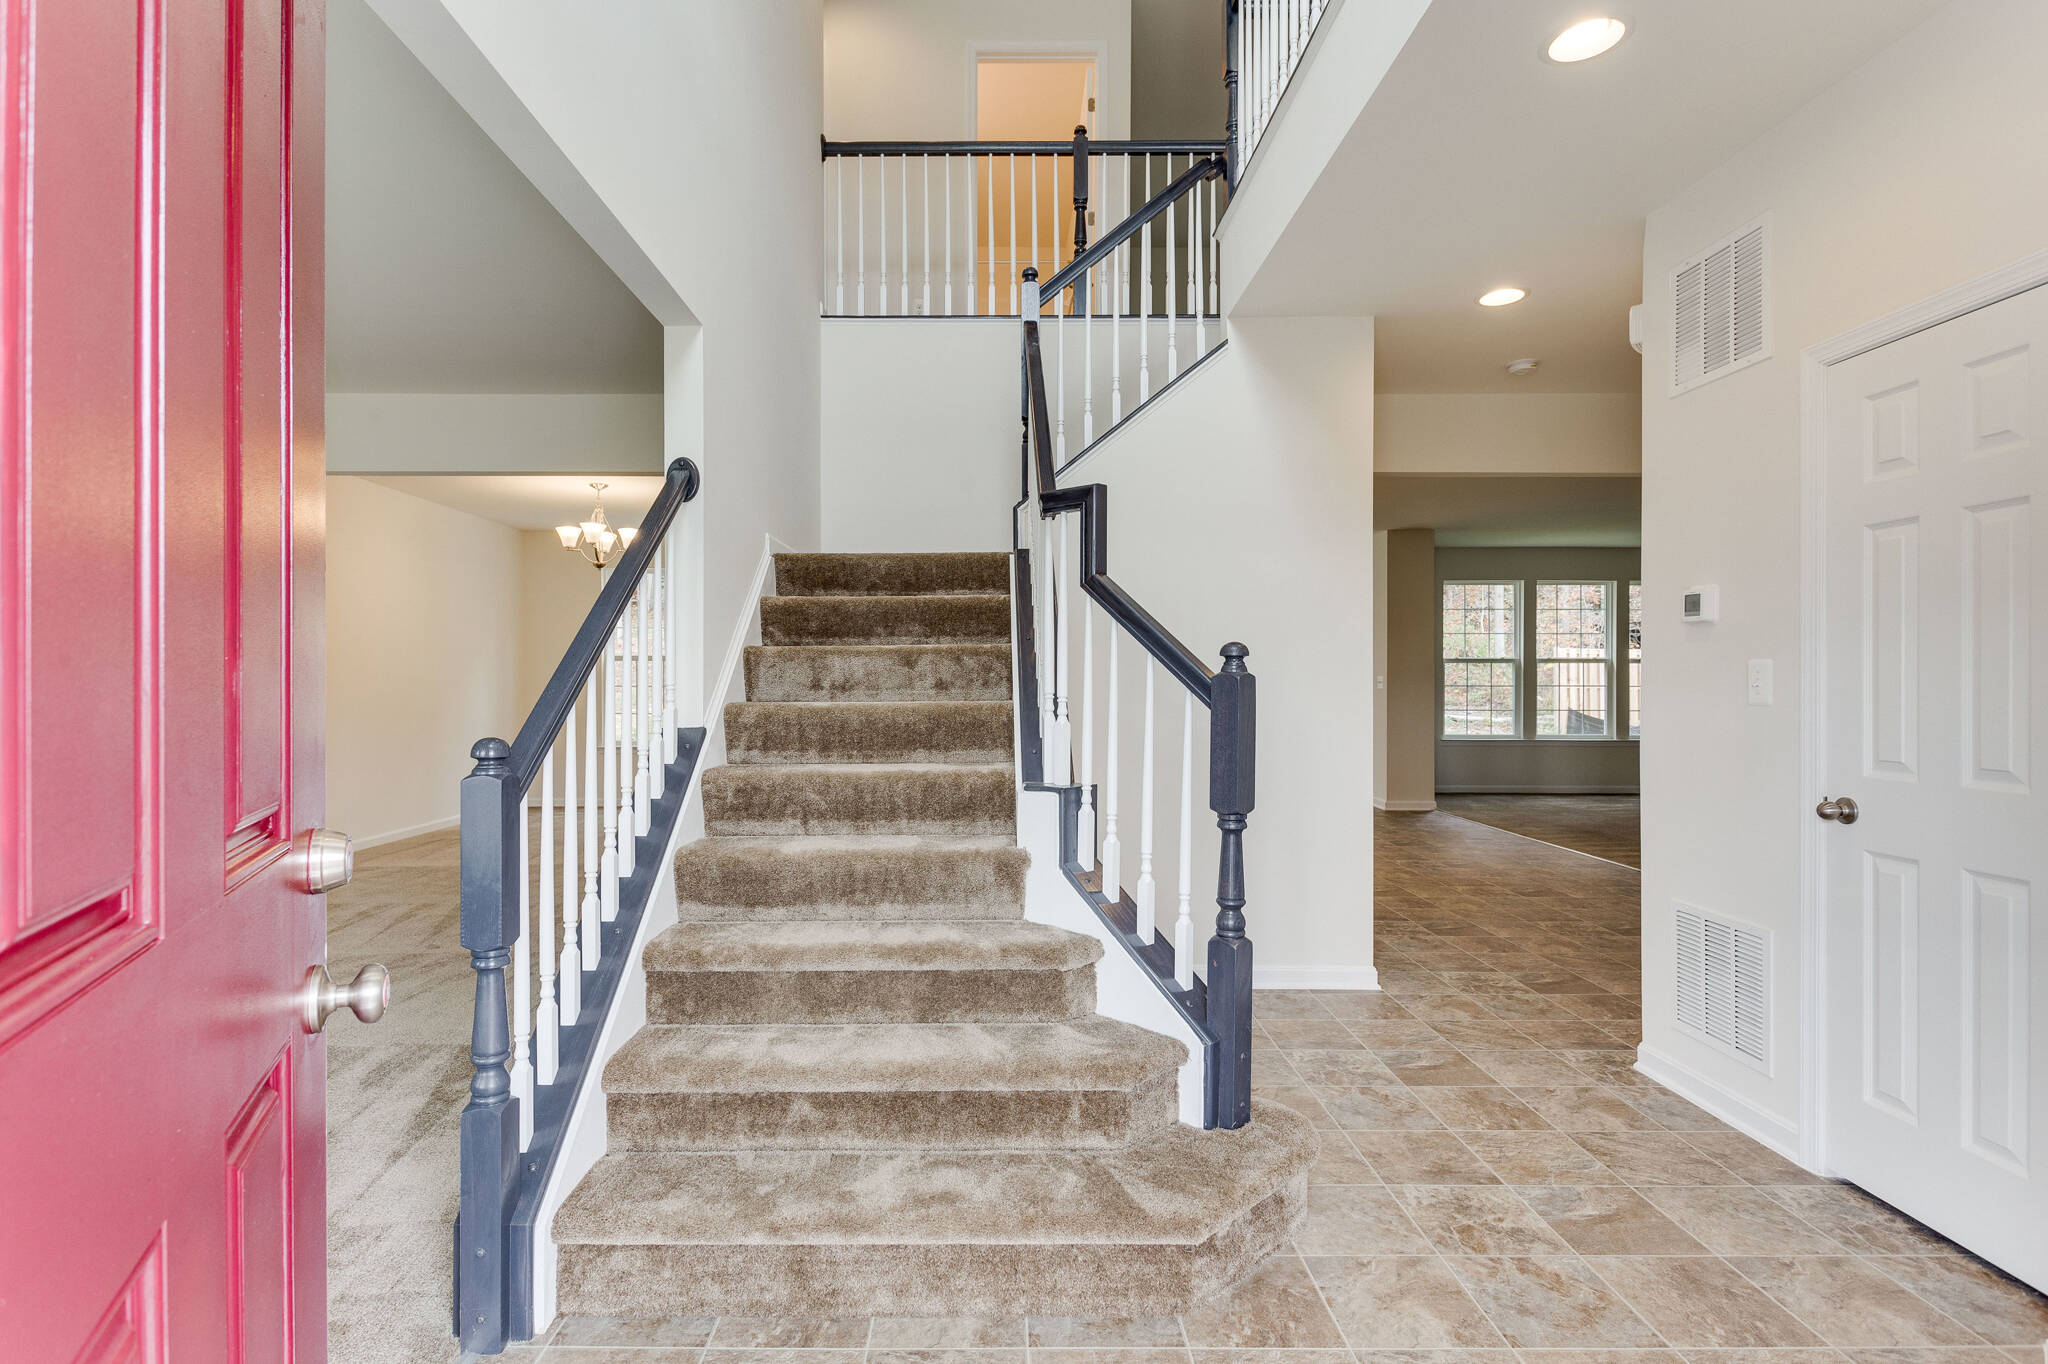 foyer peachtree II 16 lot 10 new homes at wellspring